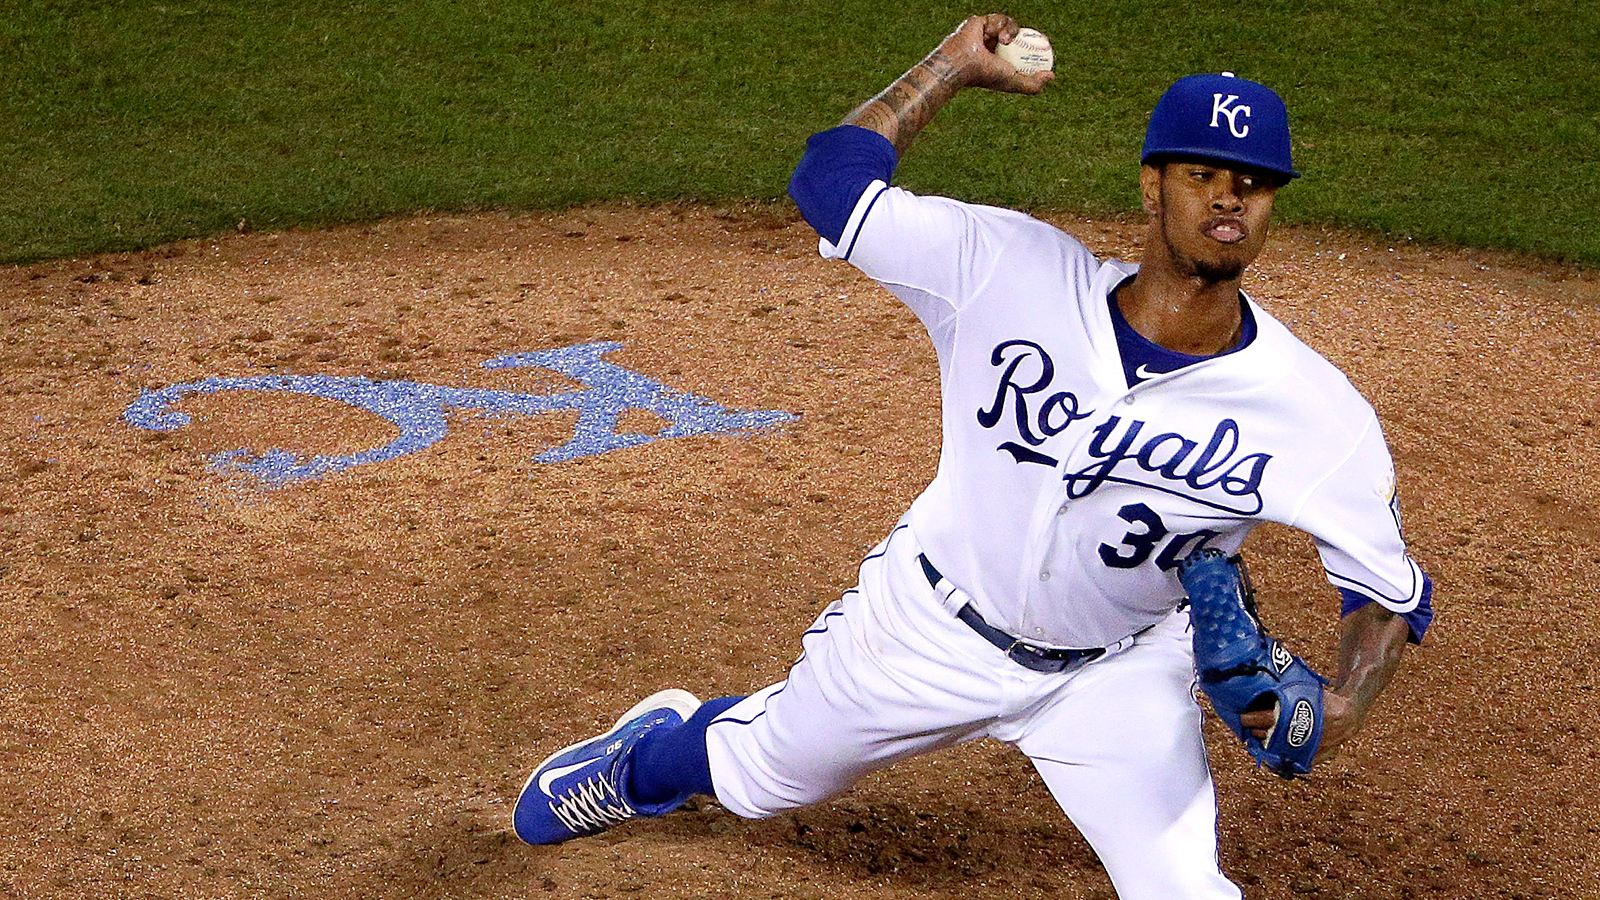 Ventura rocks, Royals offense rolls in 12-1 rout of Tigers